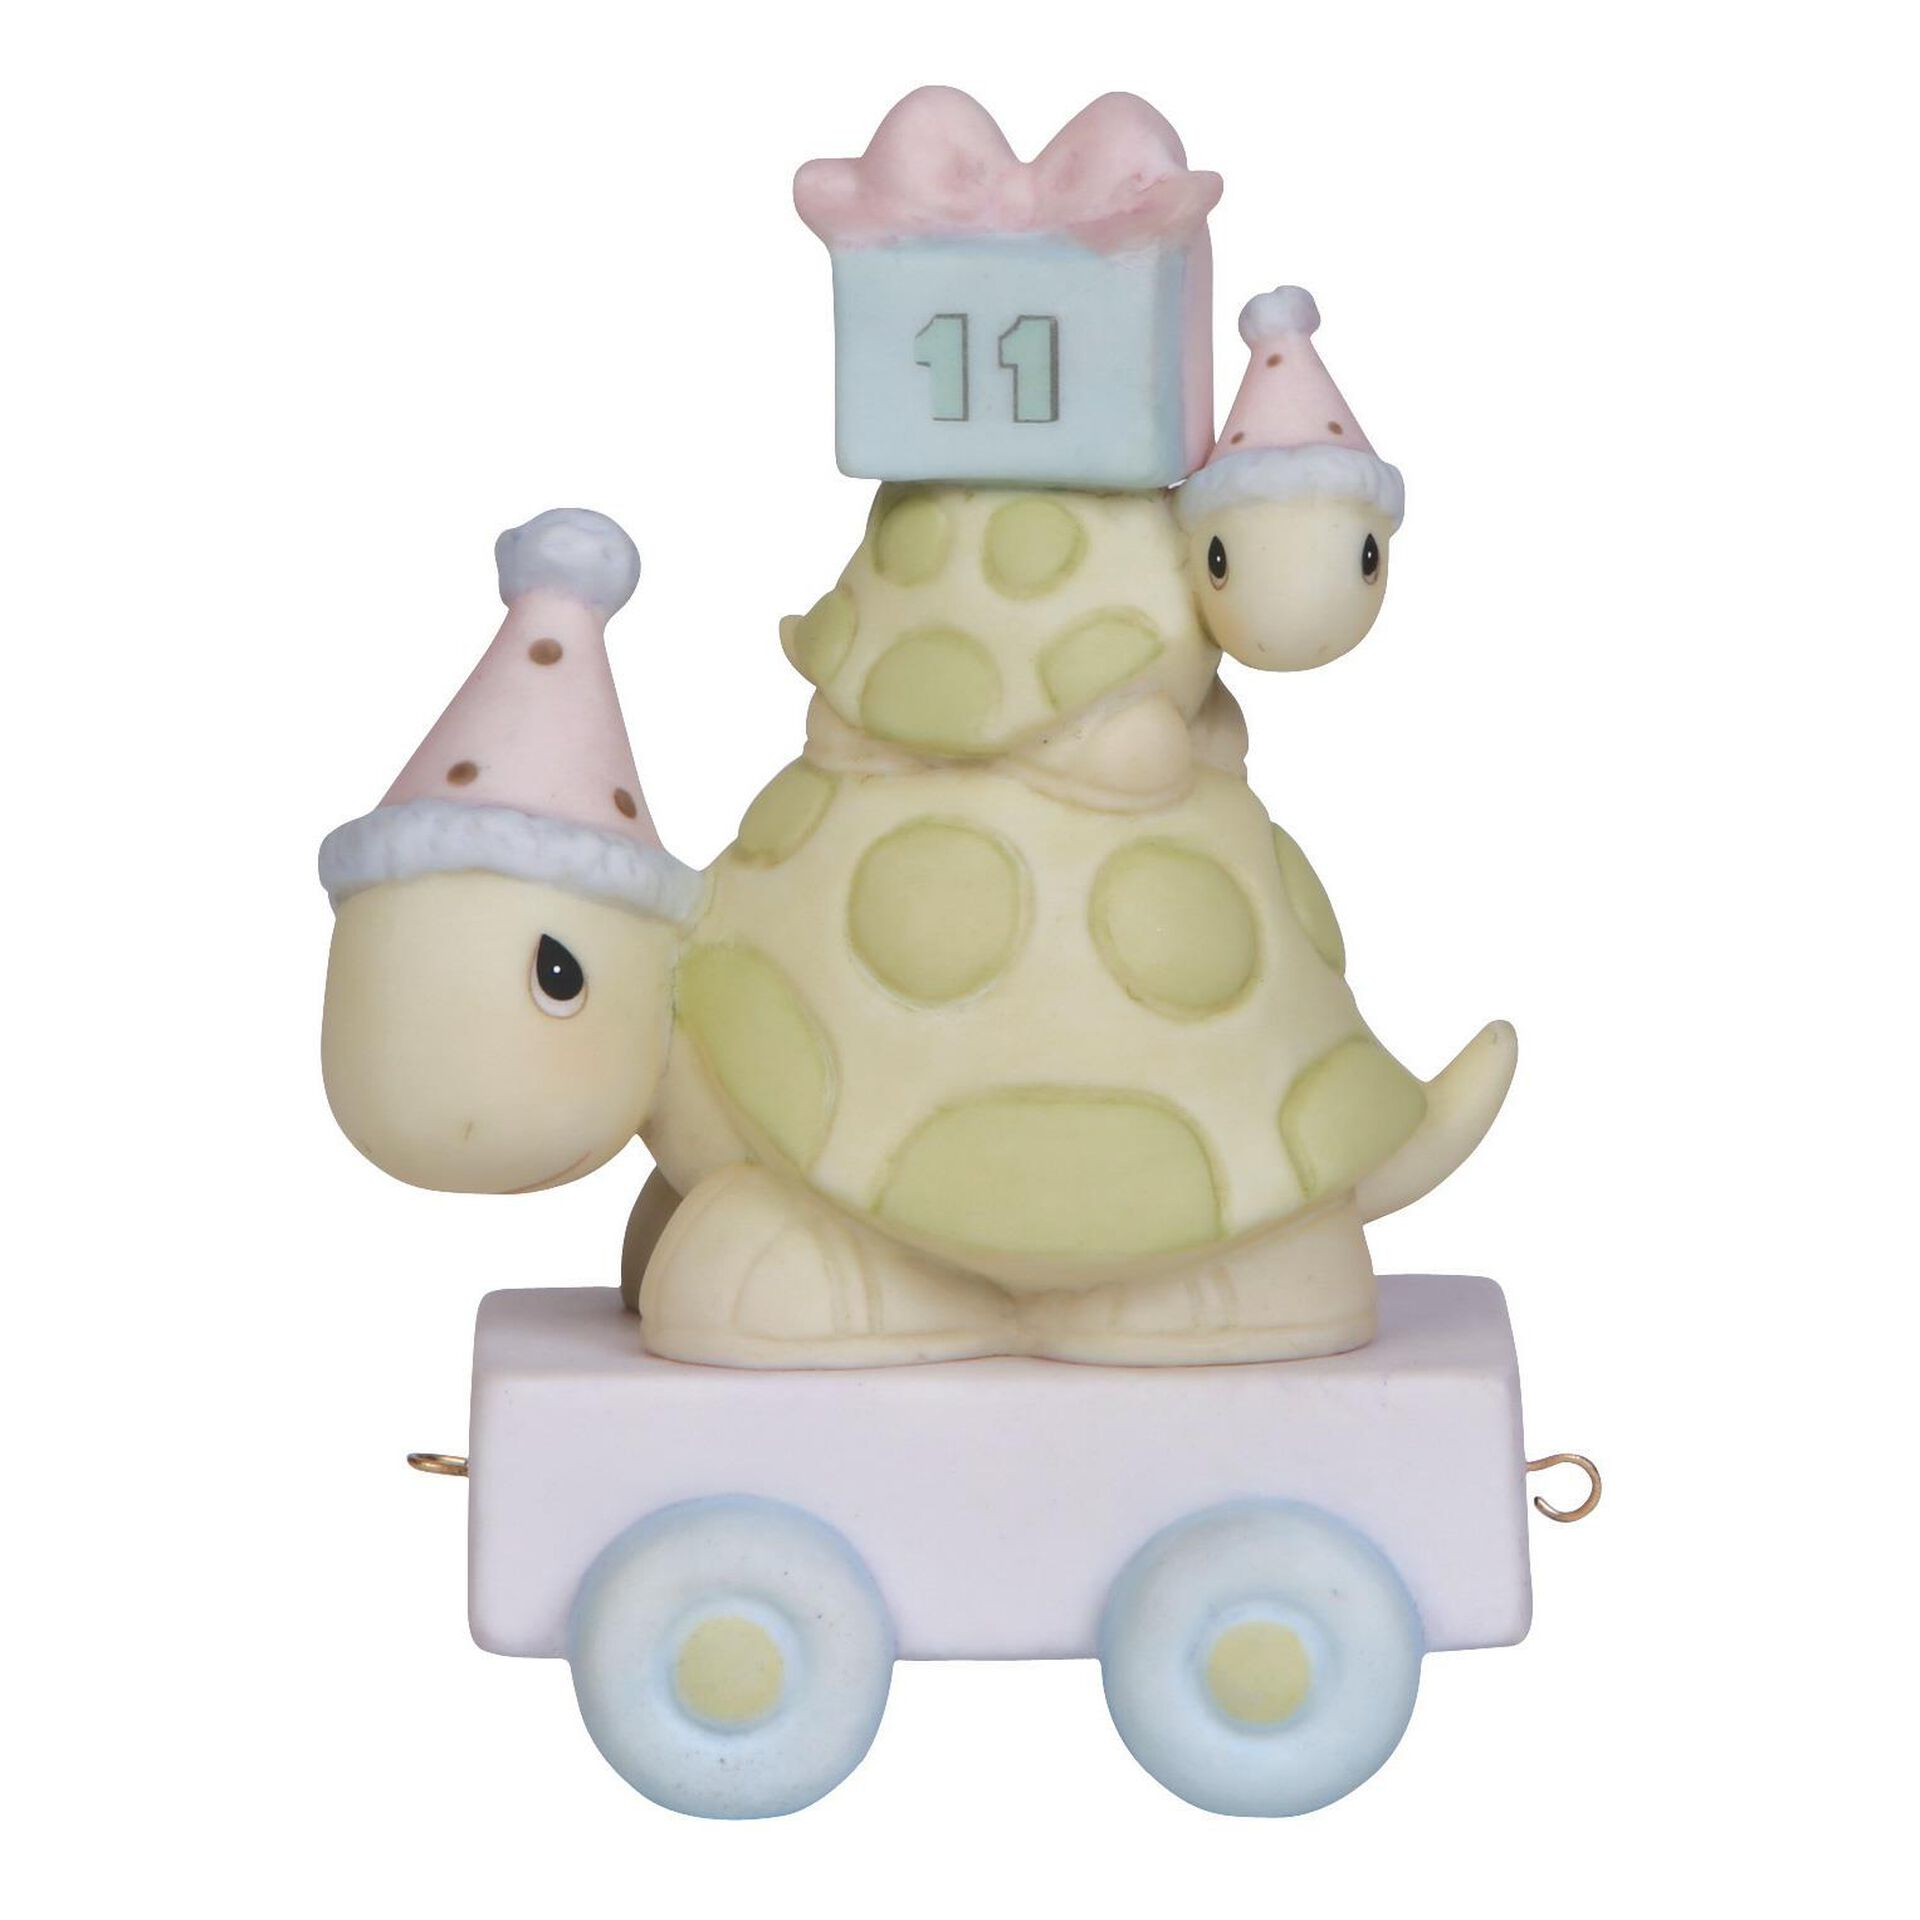 Precious Moments® It's Your Birthday Turtle Pair Figurine, Age 11 -  Figurines - Hallmark